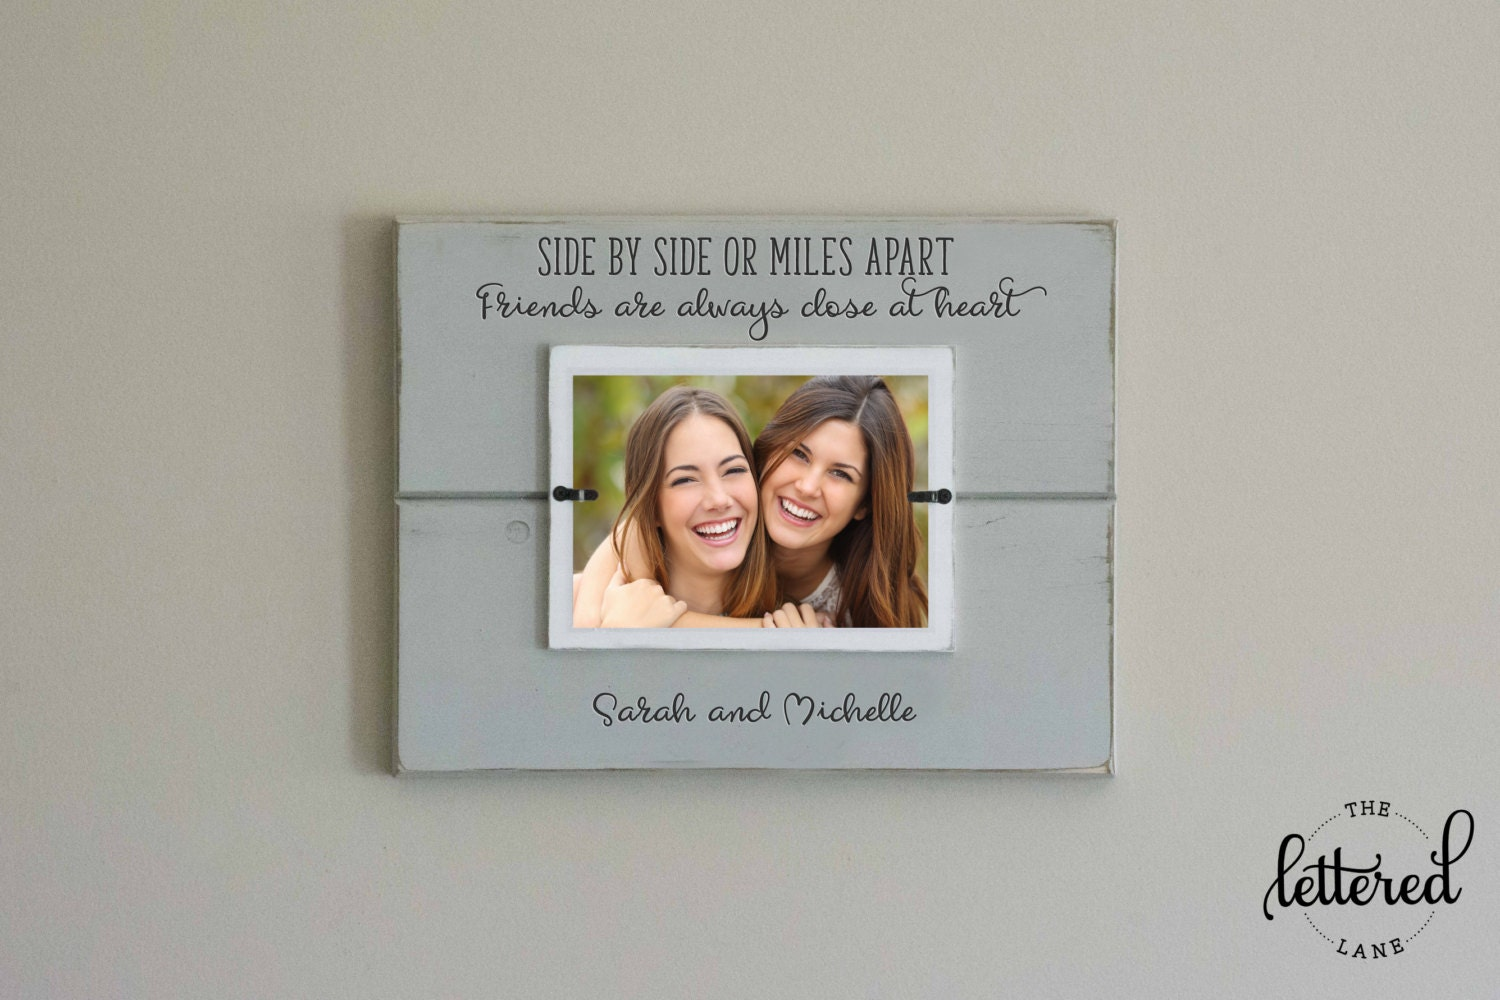 Friends picture frame side by side or miles apart close at